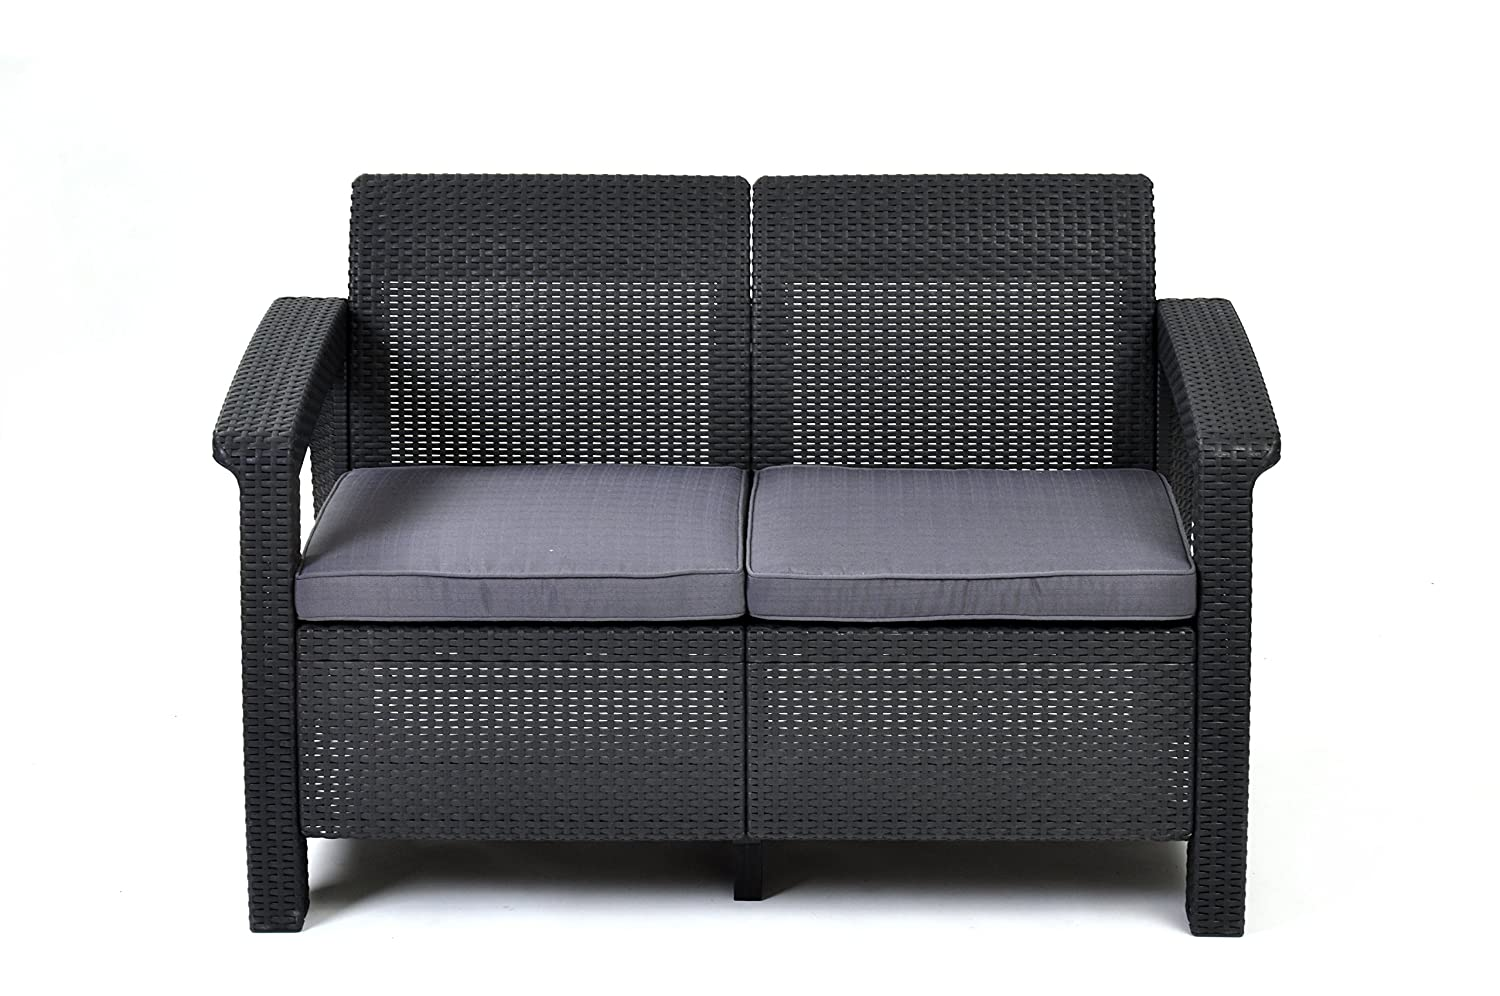 Amazon.com : Keter Corfu Love Seat All Weather Outdoor Patio Garden  Furniture W/Cushions, Charcoal : Patio Loveseats : Garden U0026 Outdoor